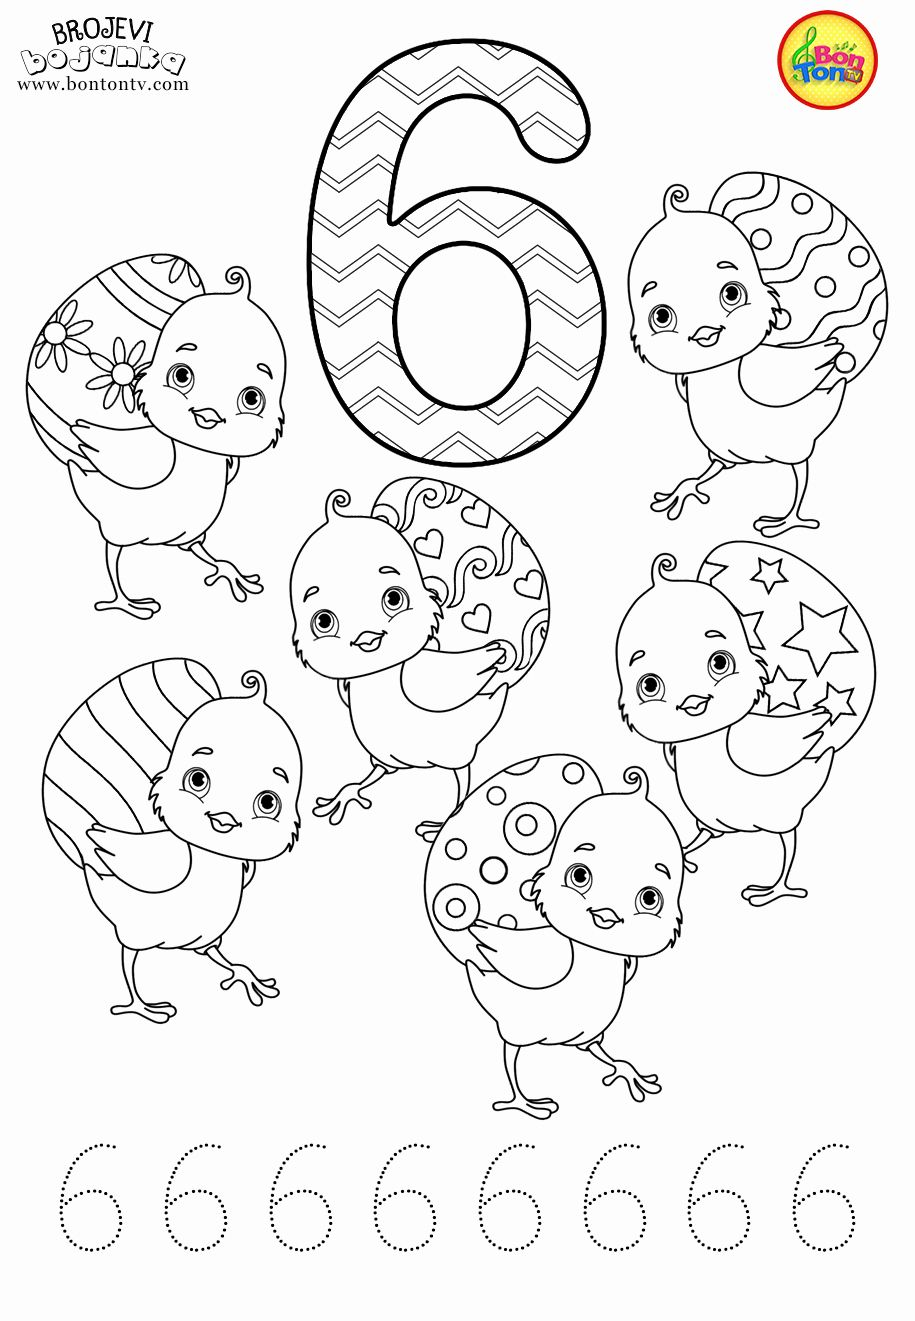 preschool coloring pages pdf 20 preschool coloring pages free word pdf jpeg png pages coloring pdf preschool 1 1